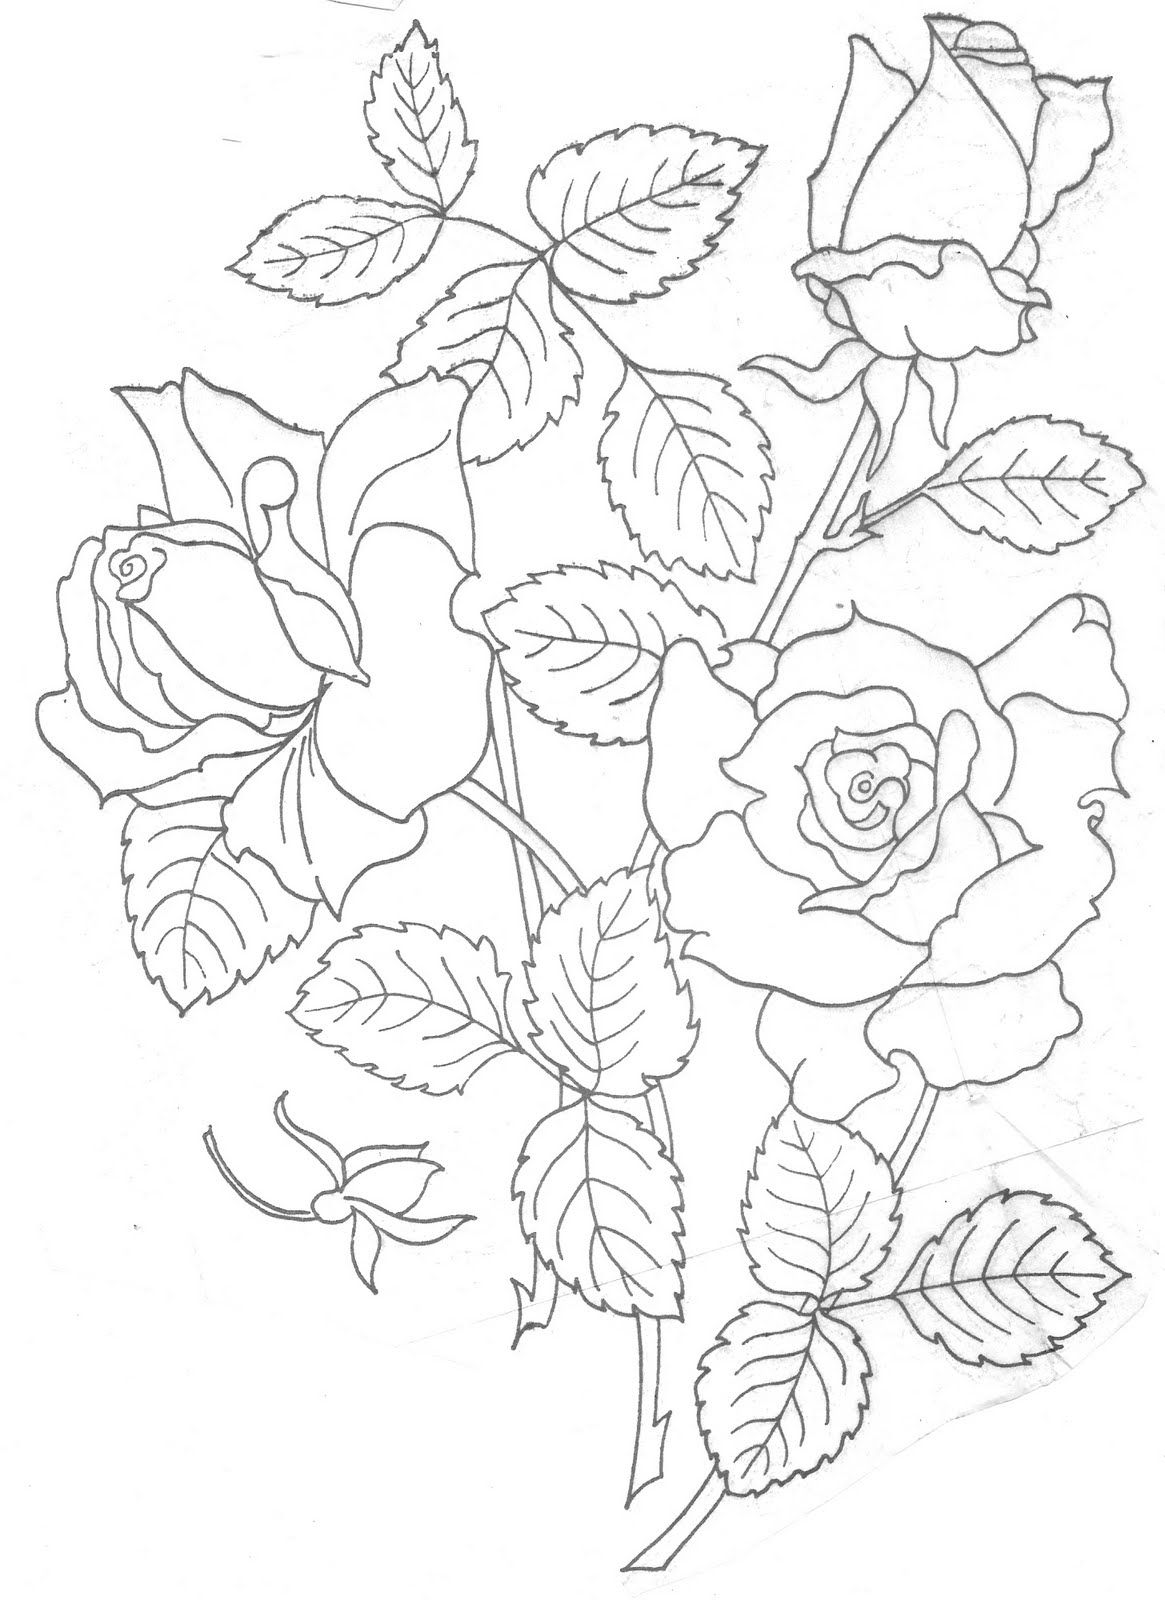 Outline embroidery designs for tablecloth - Free Hand Embroidery Flowers Patterns Embroidery Pillowcase Pattern Embroidery Designs